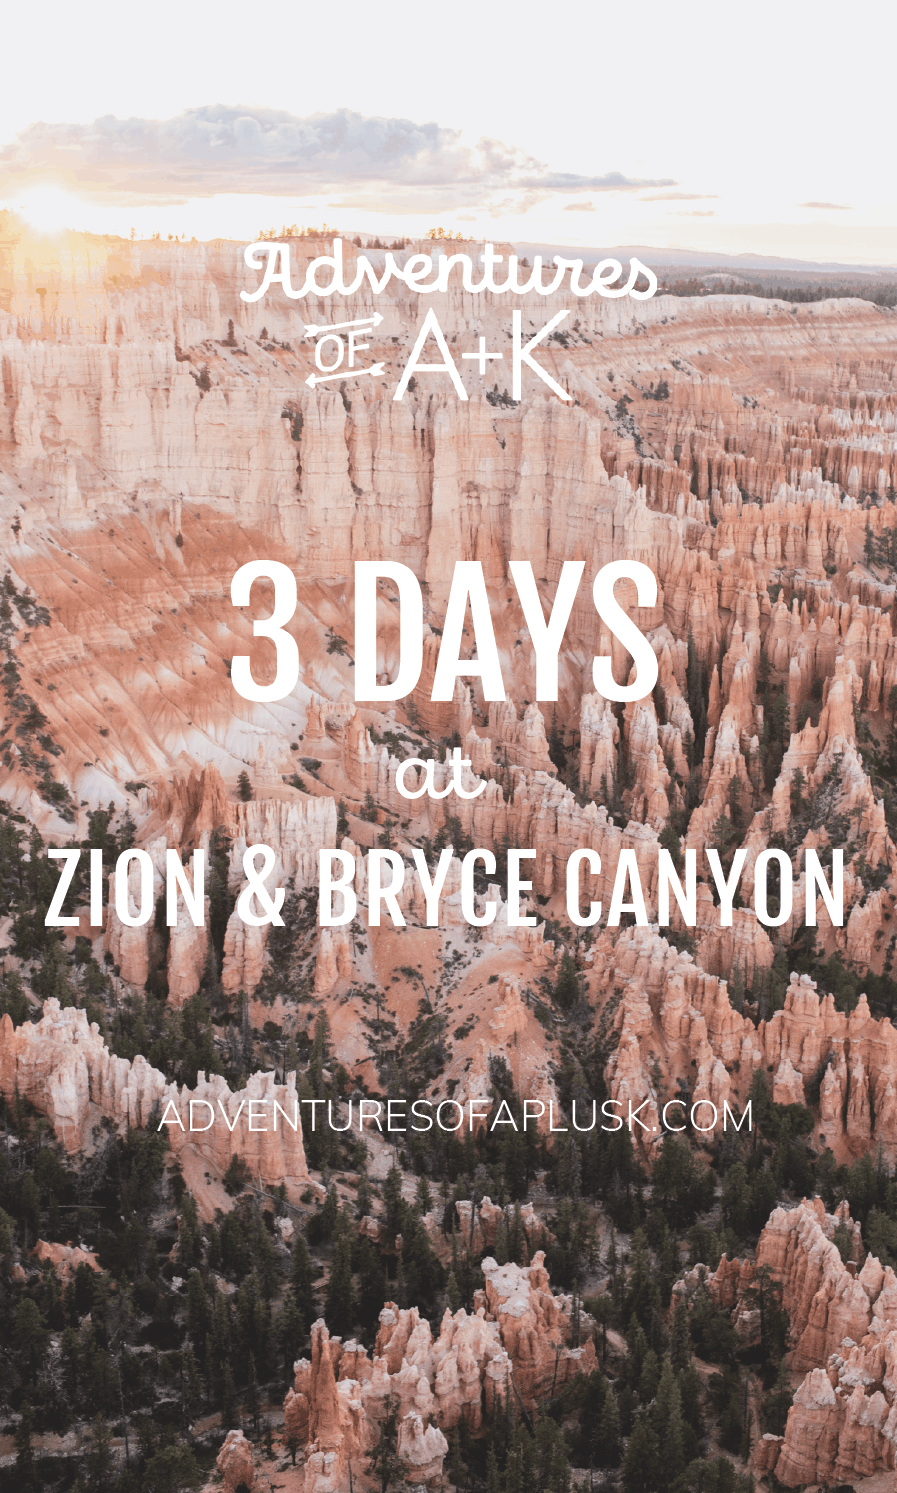 Zion National Park and Bryce Canyon National Park Guide and Itinerary   Zion Hikes   Bryce Canyon Hikes   Things to do Zion   Things to do Bryce Canyon #BryceCanyon #Zion